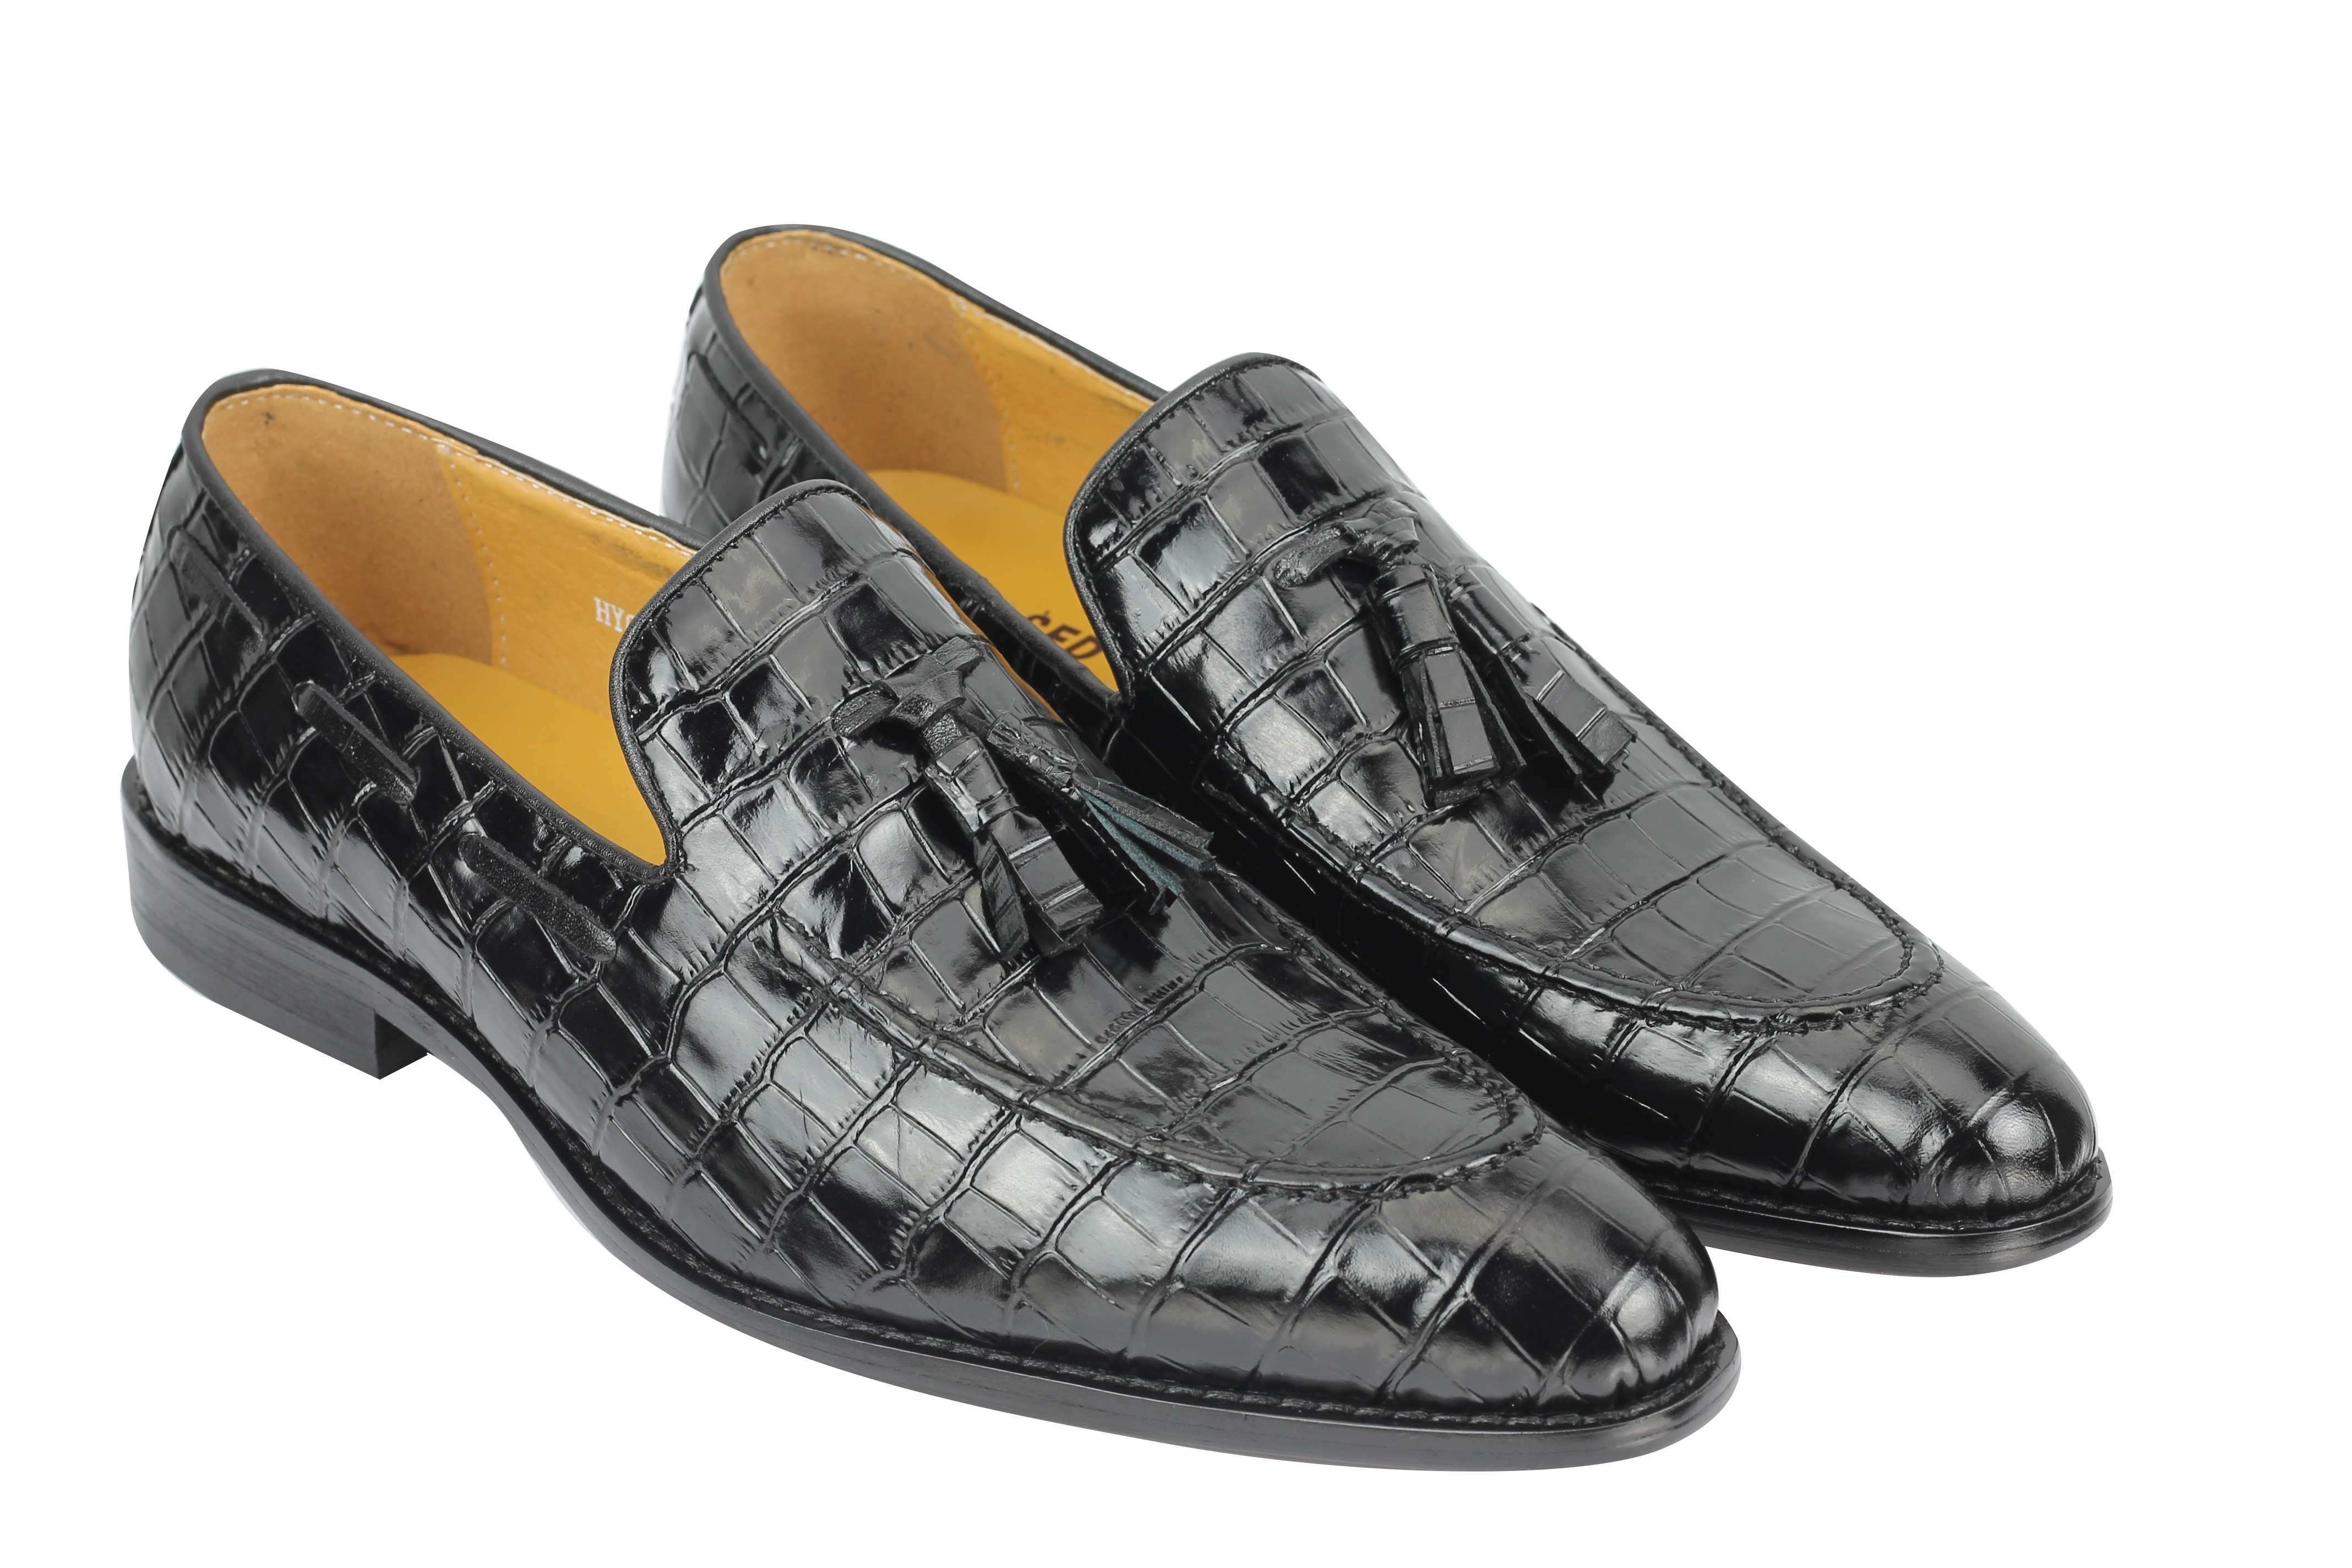 cc81095c5c255 Mens Crocodile Print Shiny Real Leather Tassel Loafers Shoes Vintage ...